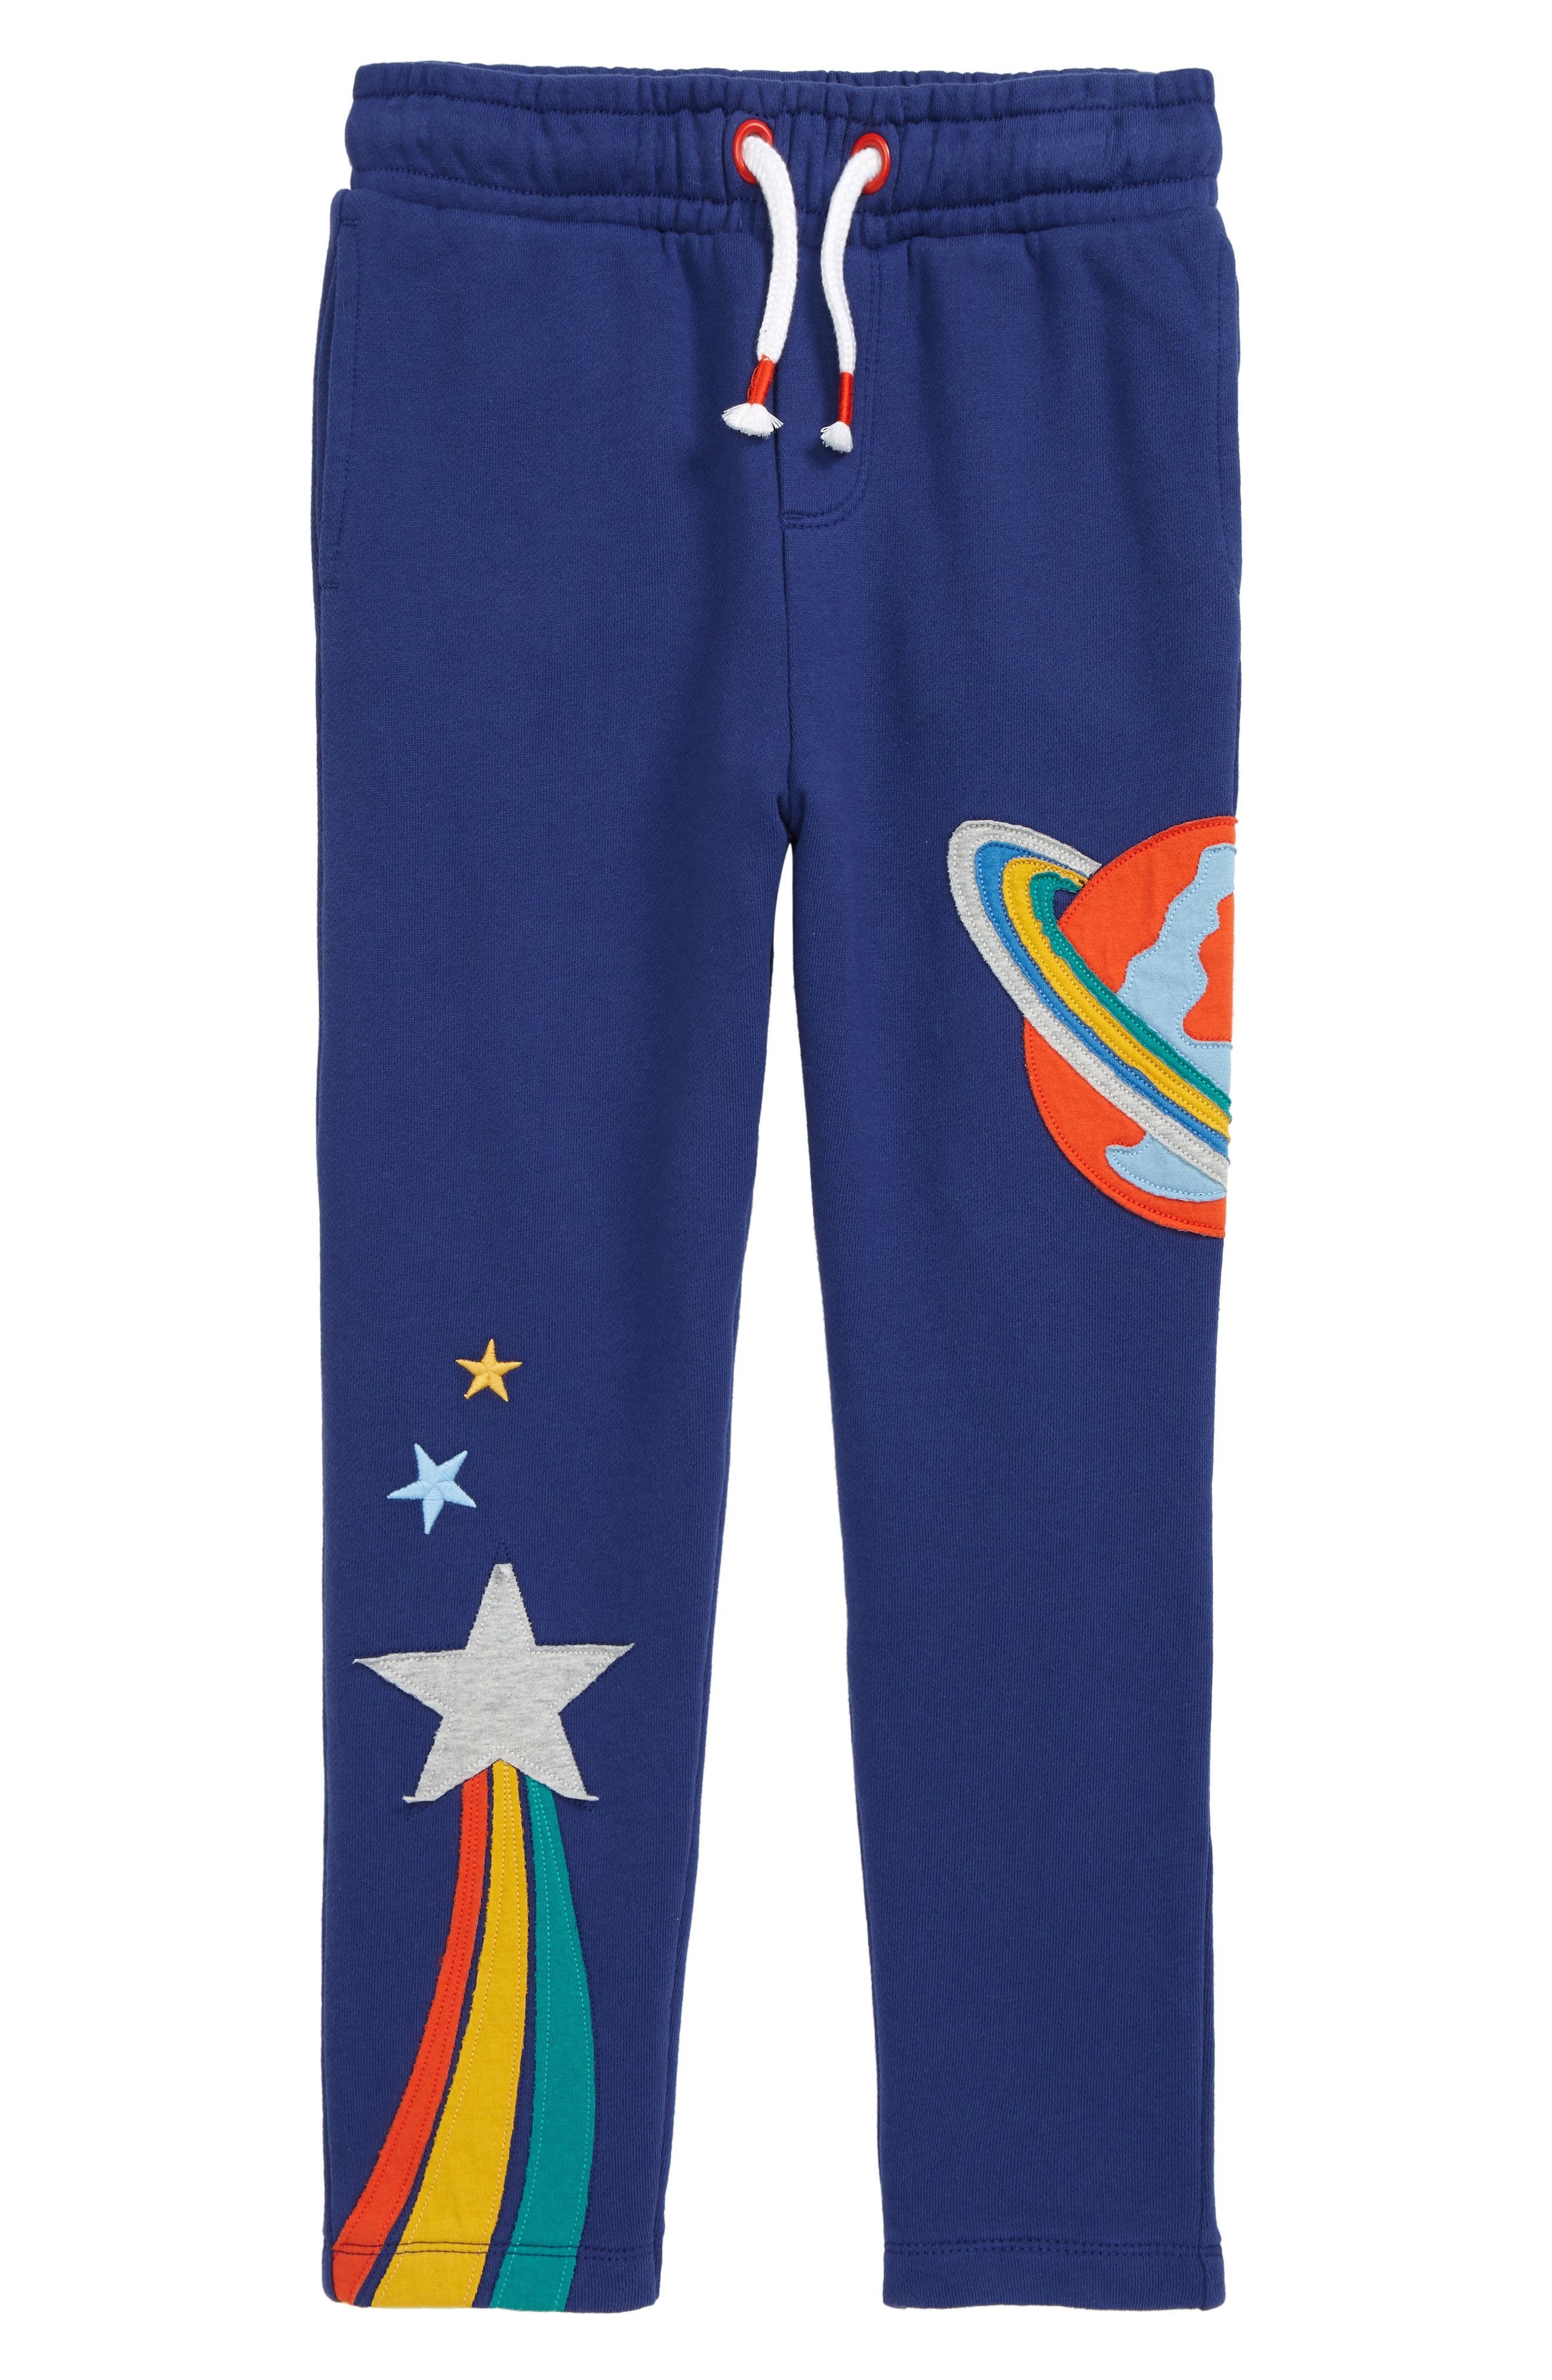 These joggers made from soft and breathable cotton with out-of-this-world appliques are perfect for backyard adventures or exploring the outer reaches of space. Style Name: Mini Boden Outer Space Applique Joggers (Toddler, Little Boy & Big Boy). Style Number: 6102263. Available in stores.